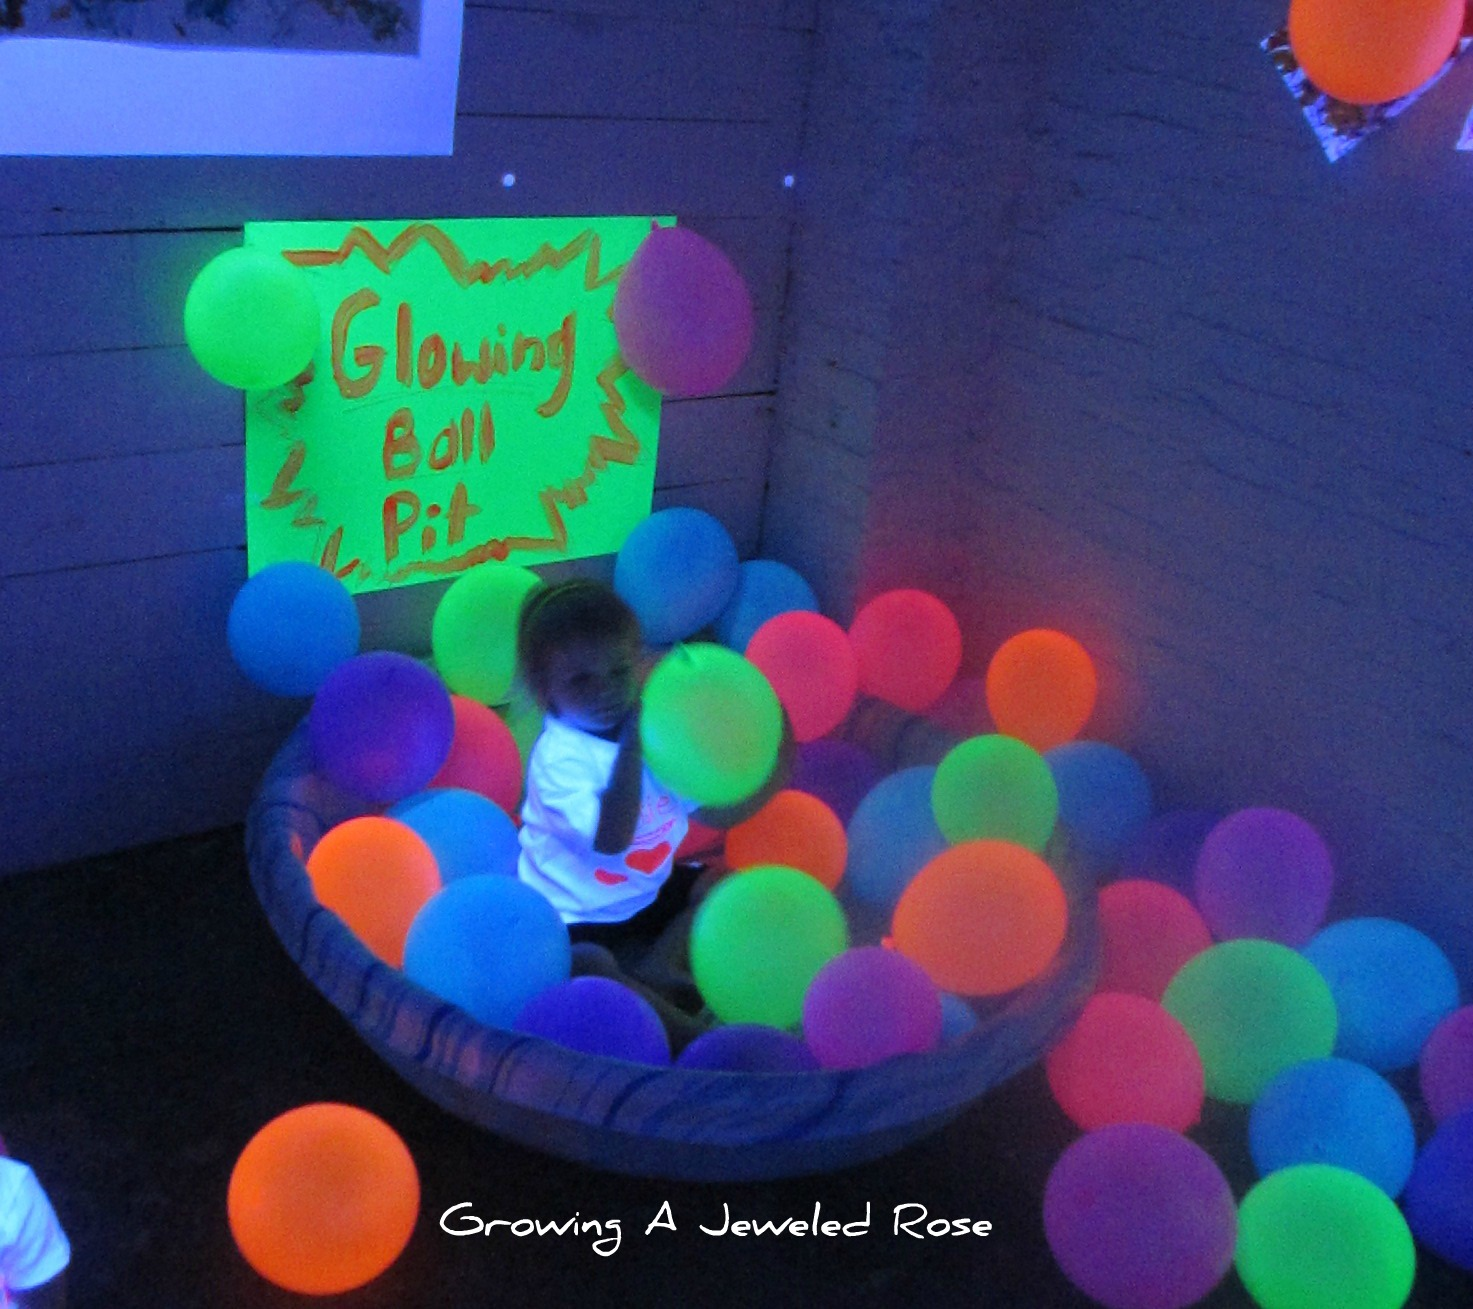 Glow in the dark water balloons - Blacklight Play